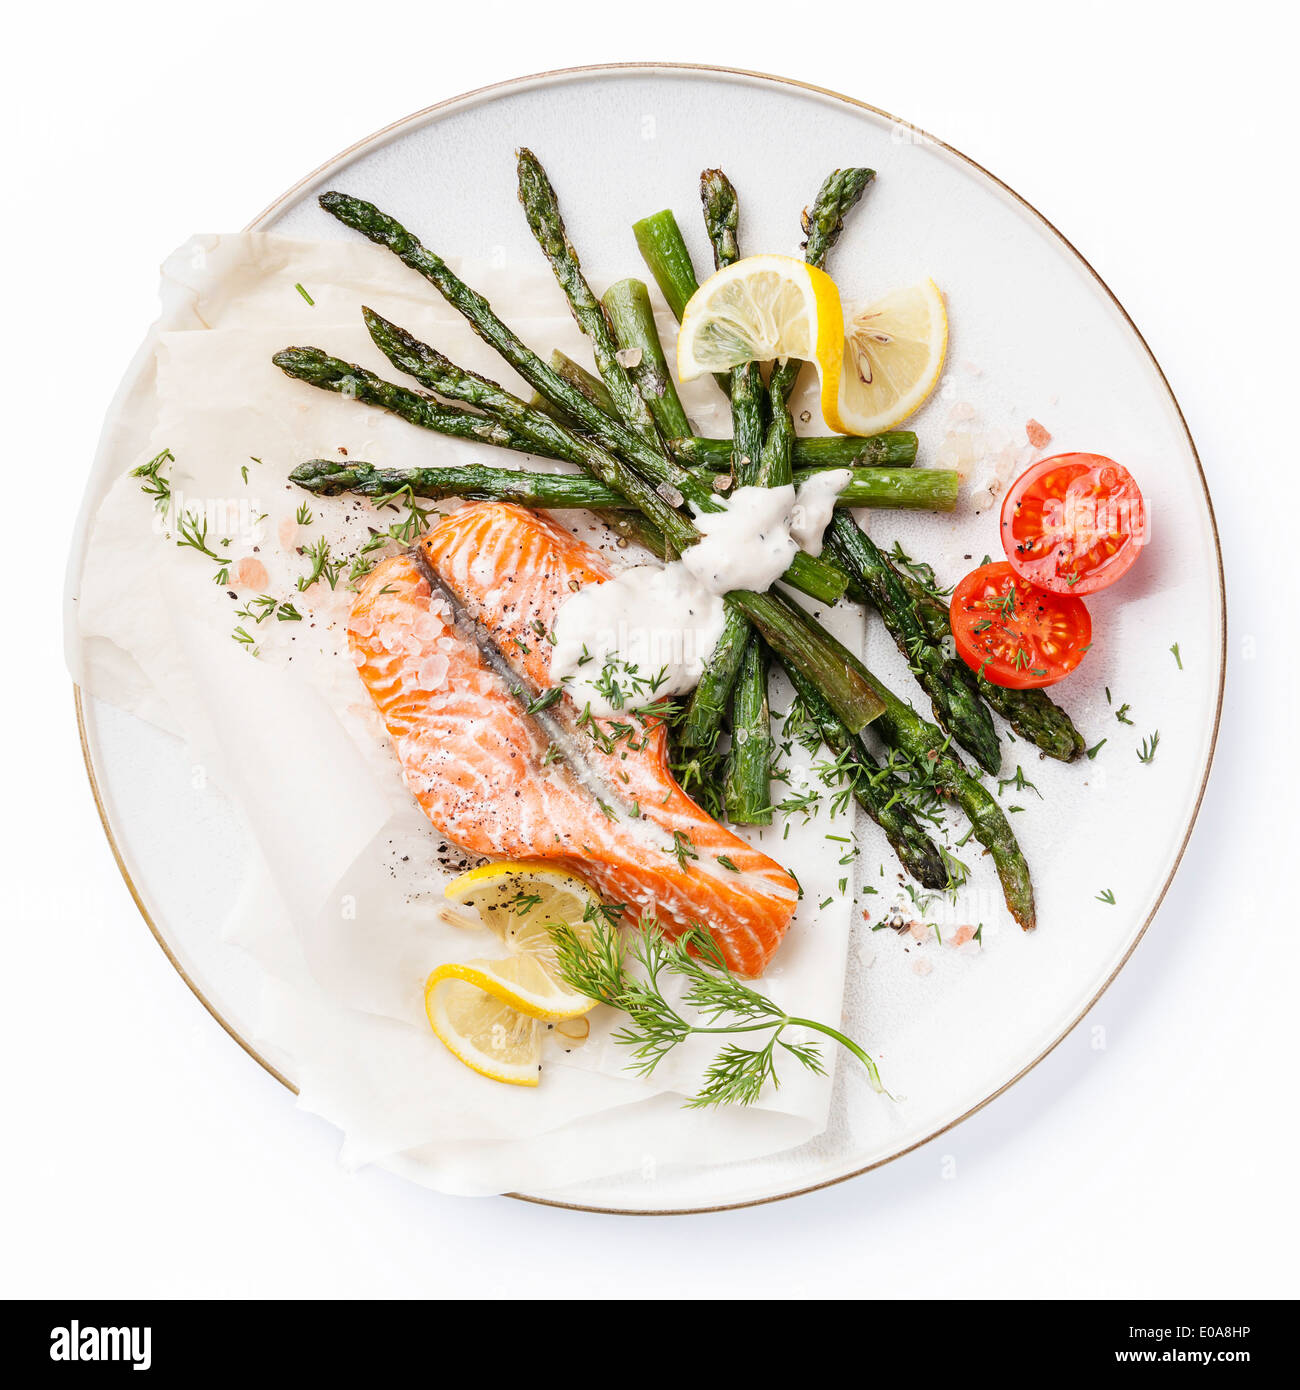 Grilled salmon with asparagus isolated on white background - Stock Image